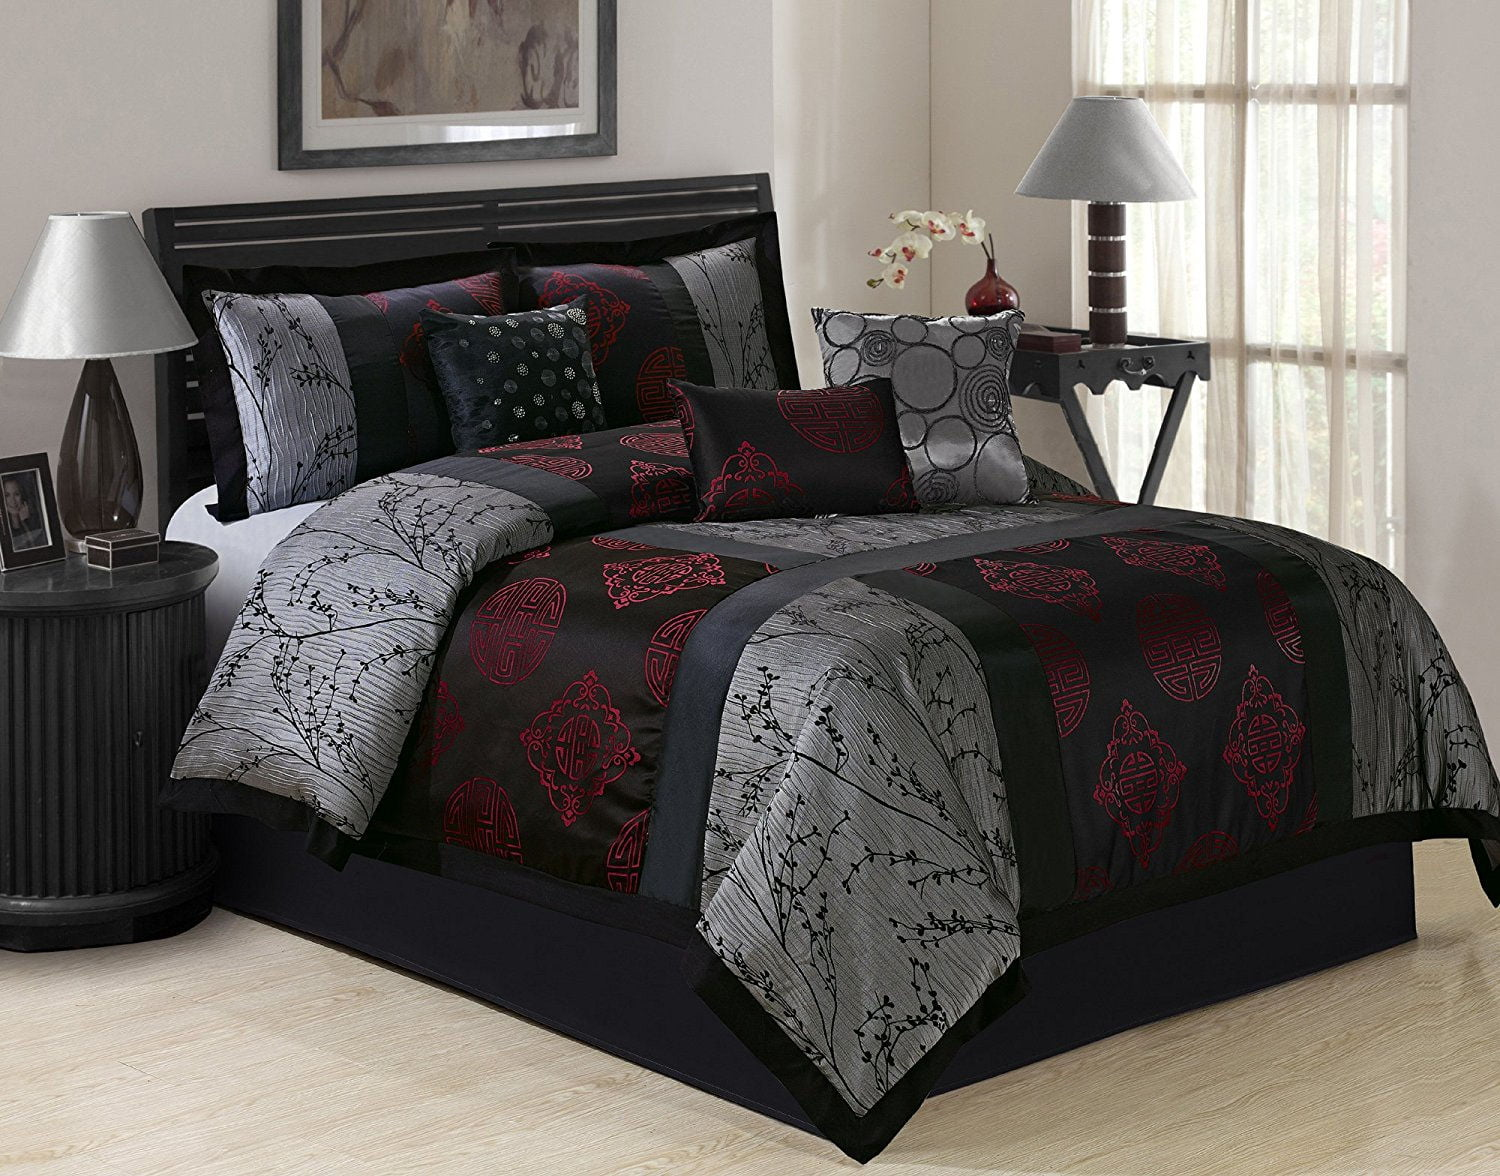 unique home shangrula 7 piece comforter bed in a bag